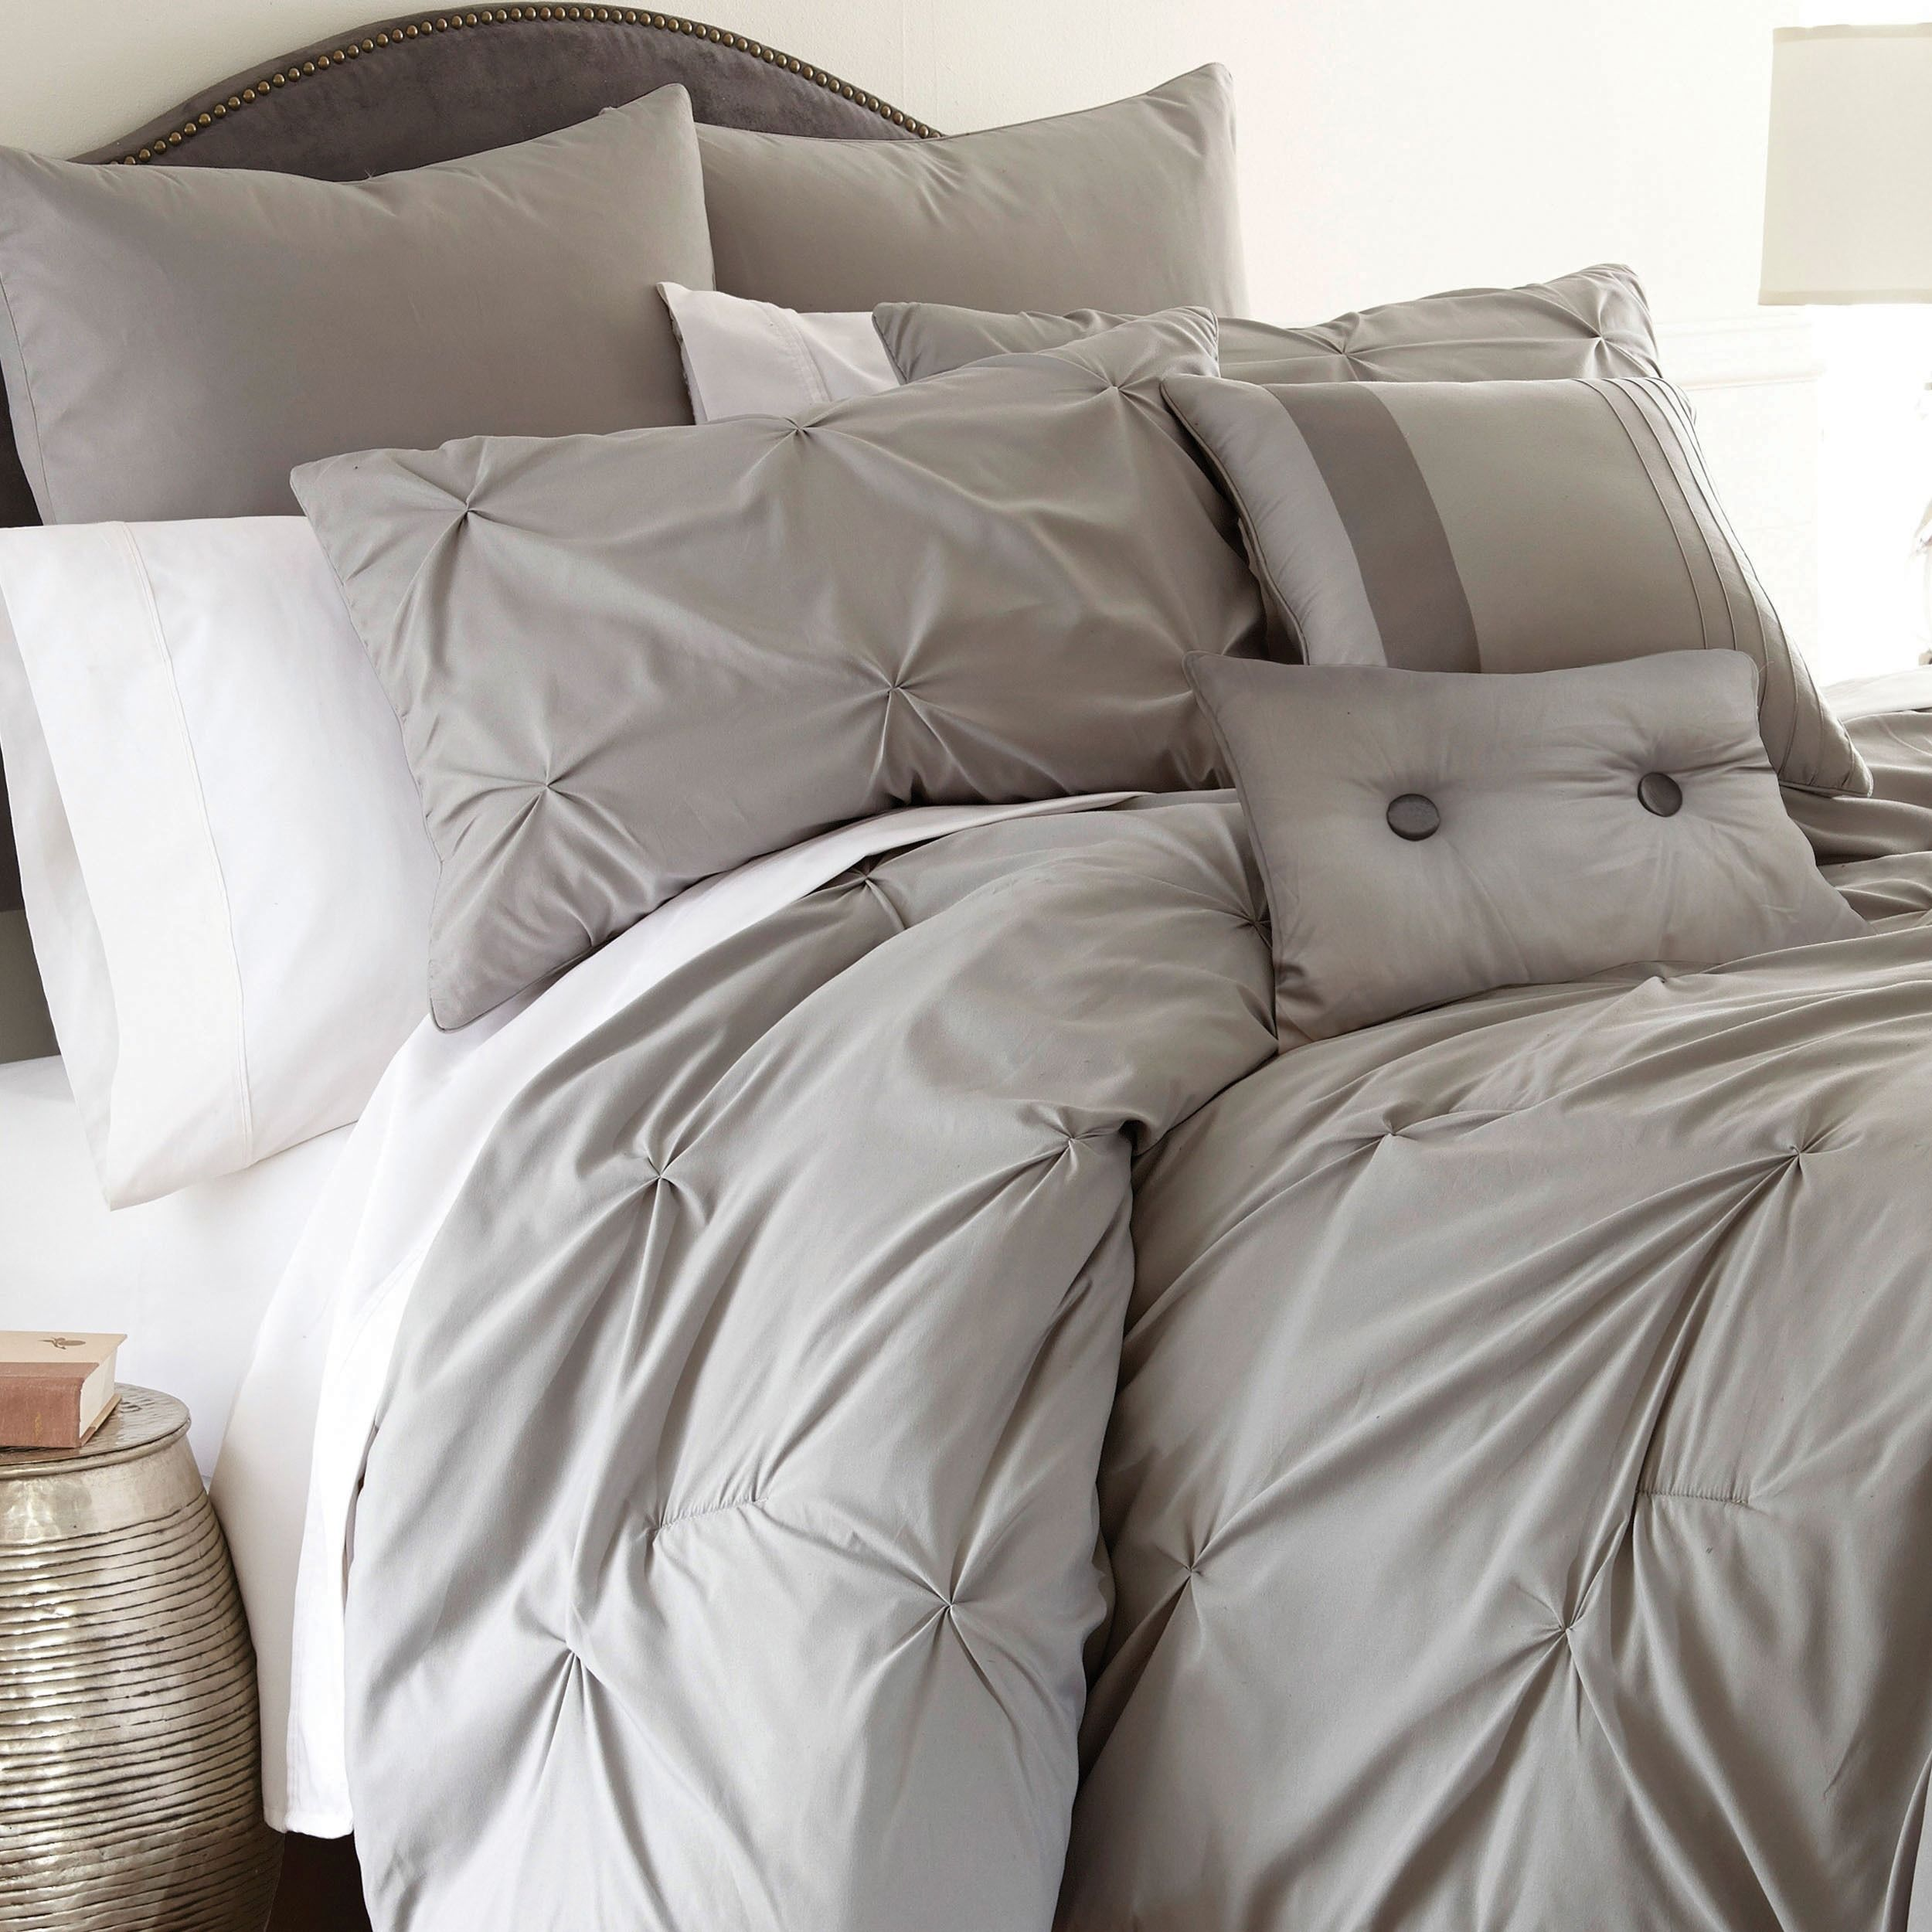 bed set sheets full quilts black bedrooms and gray of light size cream white for comforter queen gorgeous aqua grey sets comforters